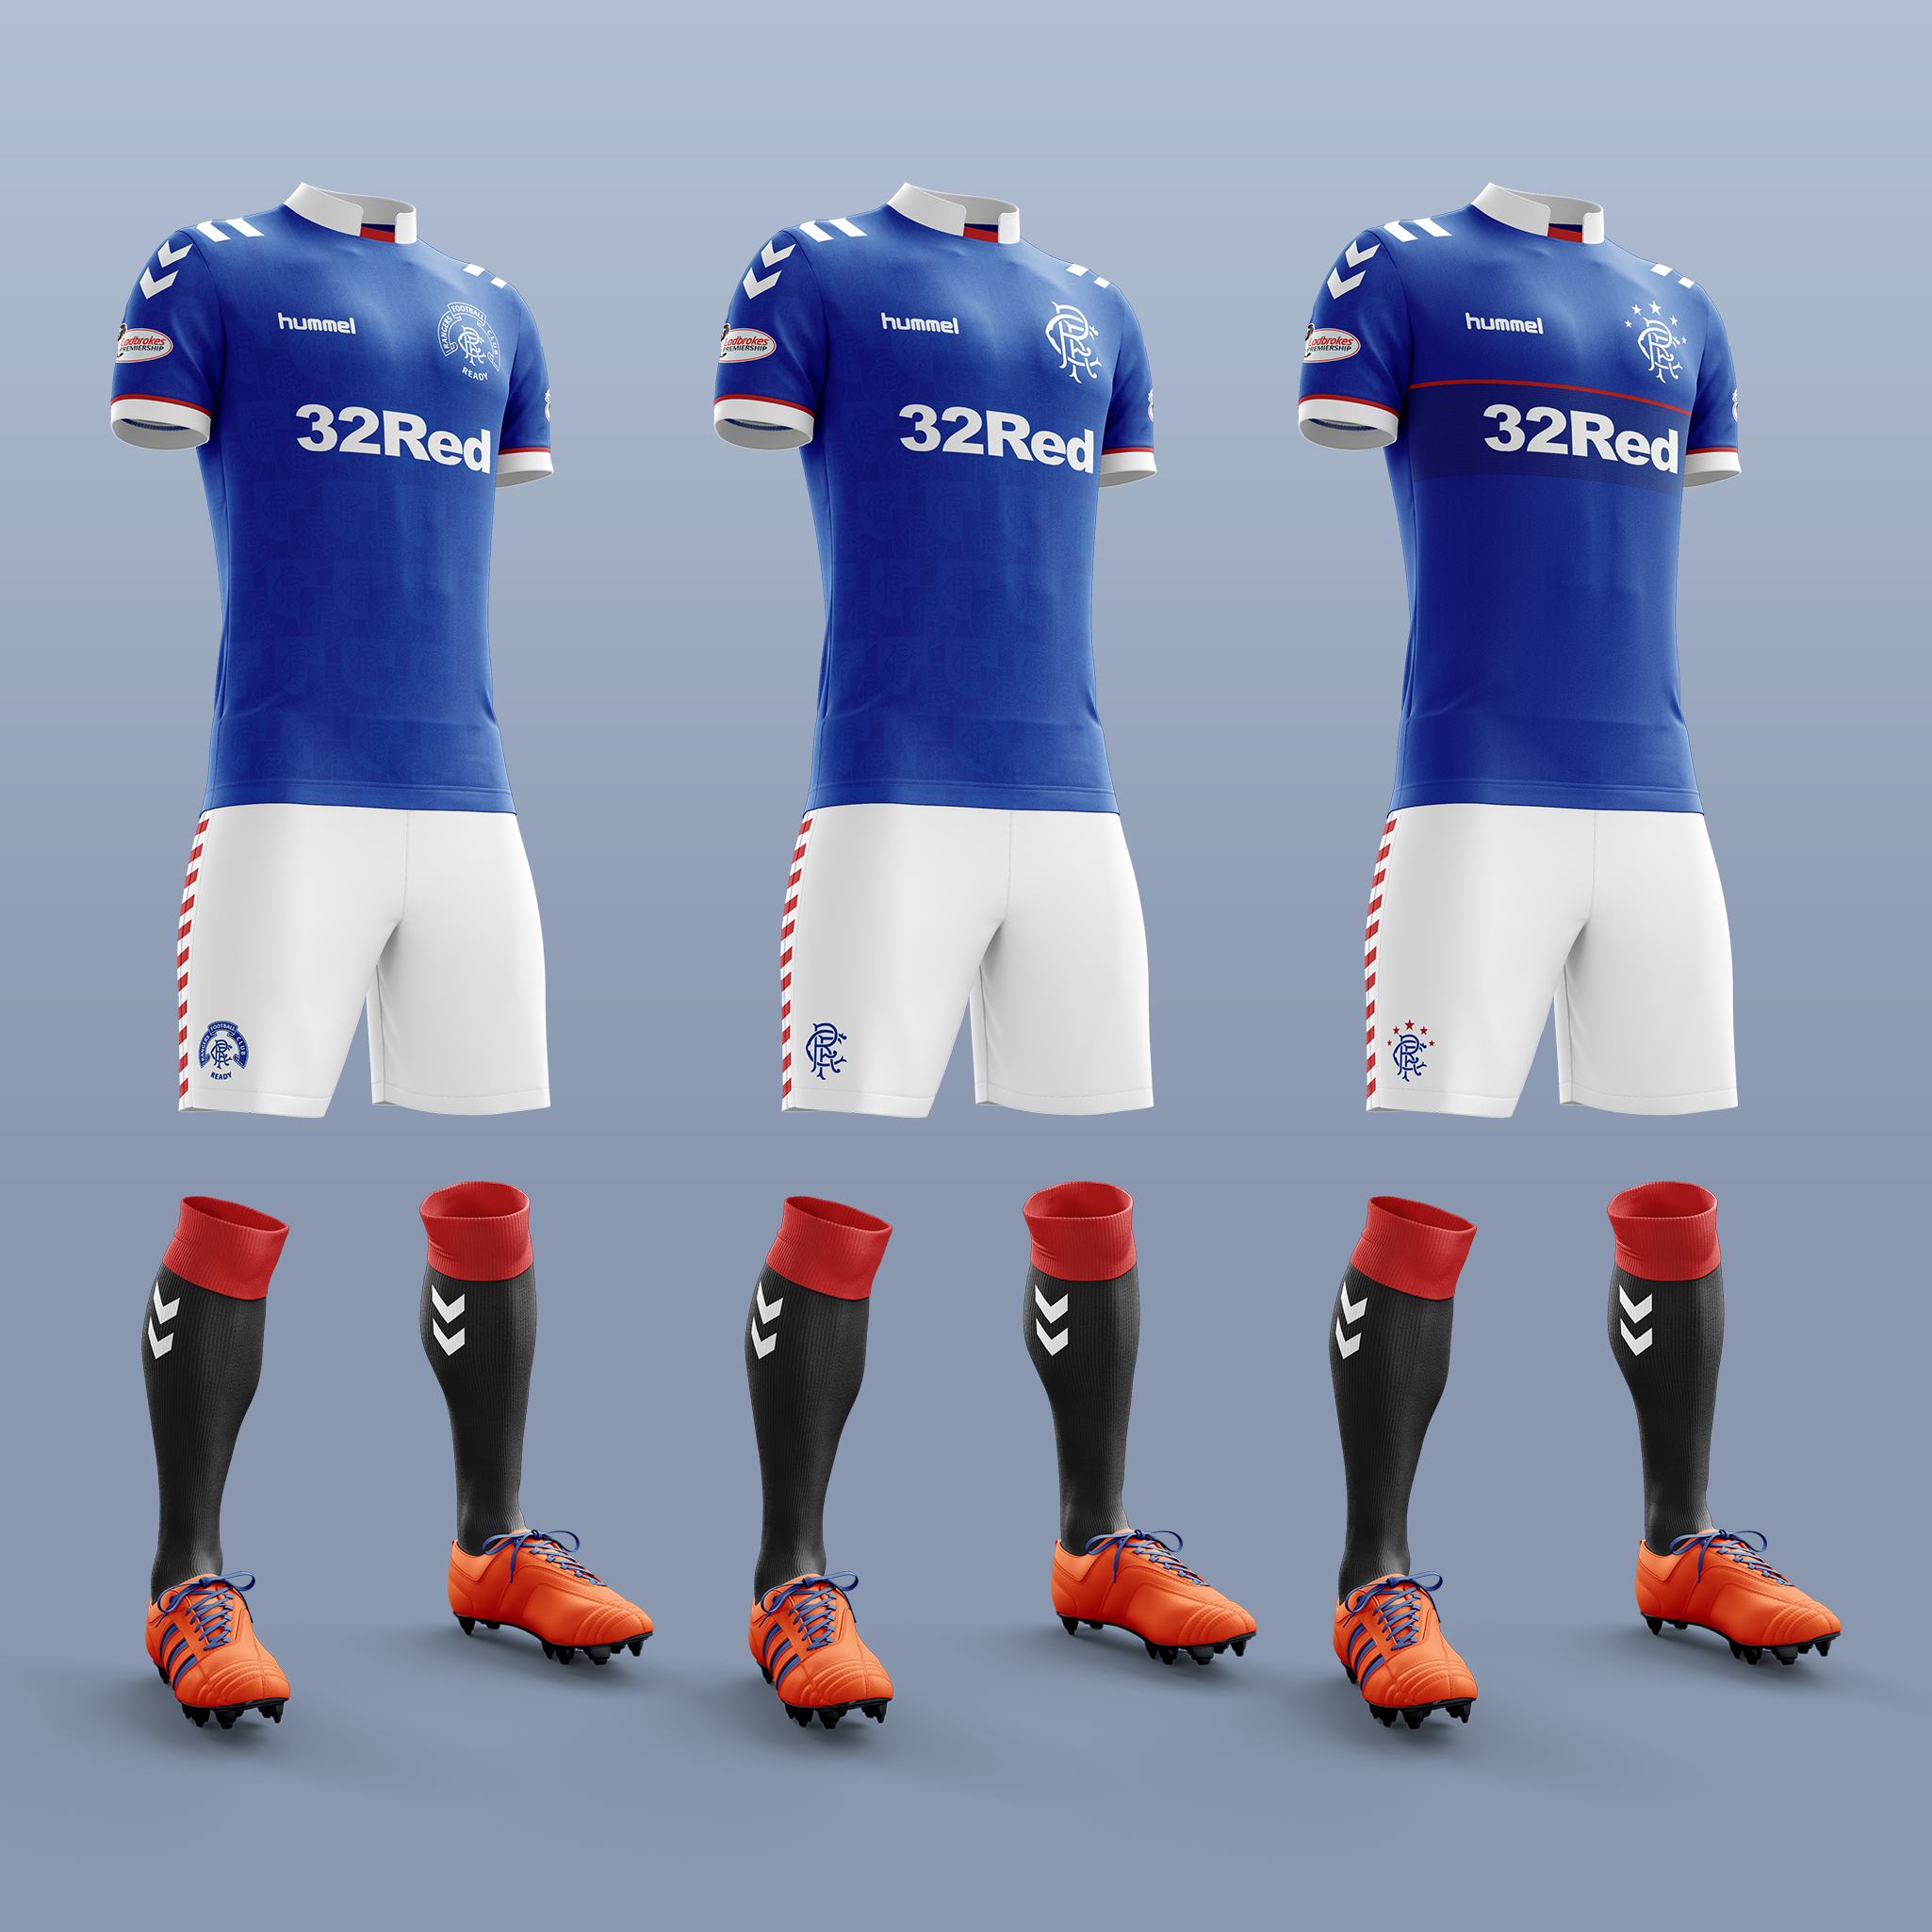 online store d58ff a59c0 New Hummel Kits - The Bears' Den - Rangers Media